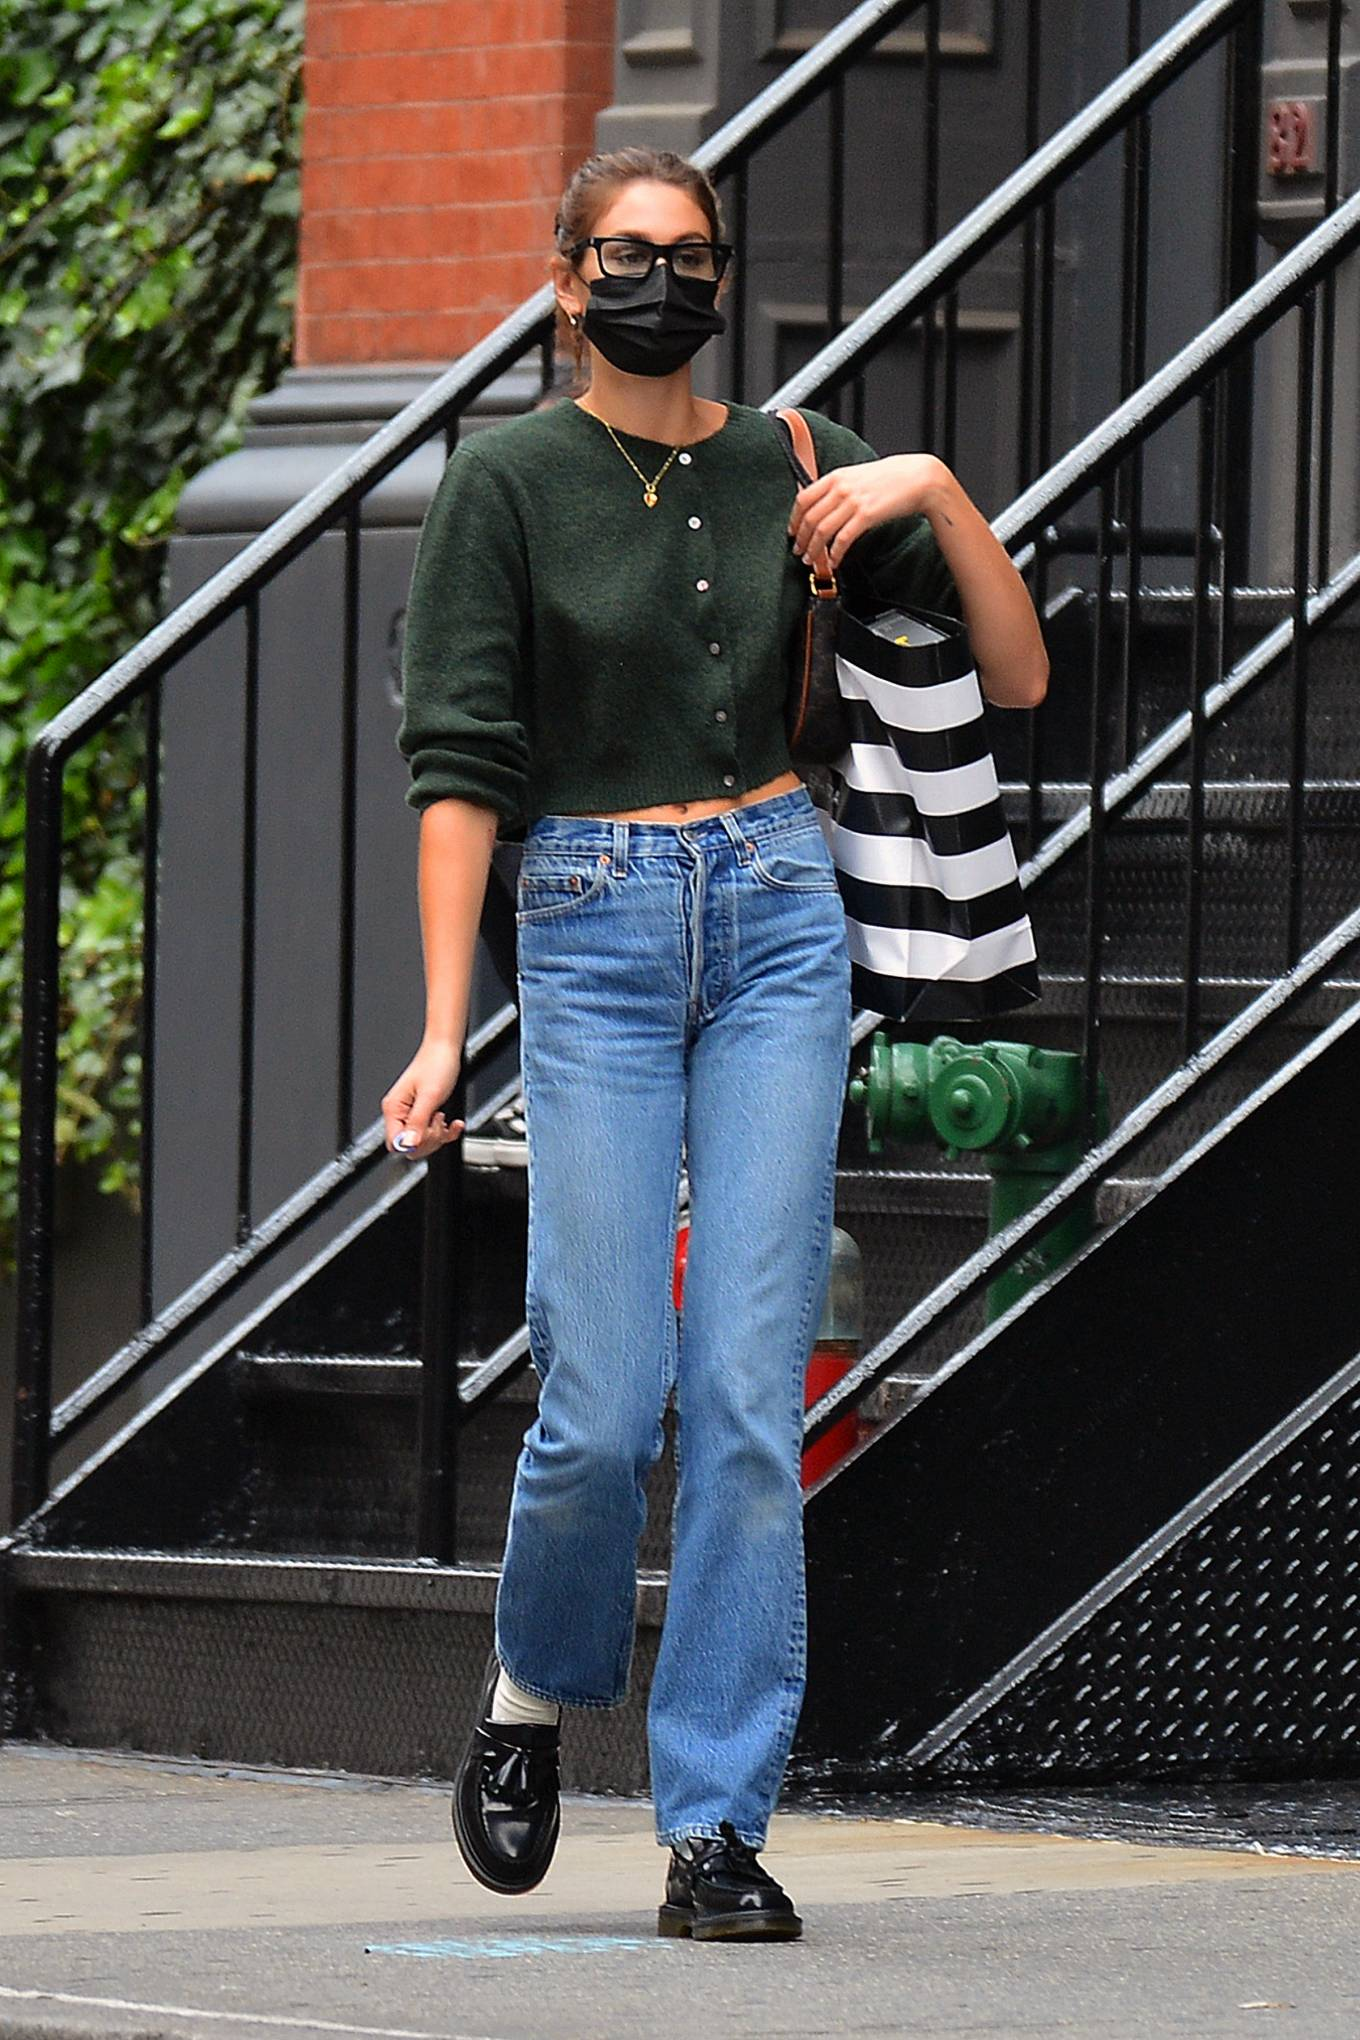 Kaia Gerber, Adrian boots, black boots, leather, black shoulder bag, olive green top, round, black sunglasses, blue jeans. Kaia Gerber rocking round black leather boots by Adrian